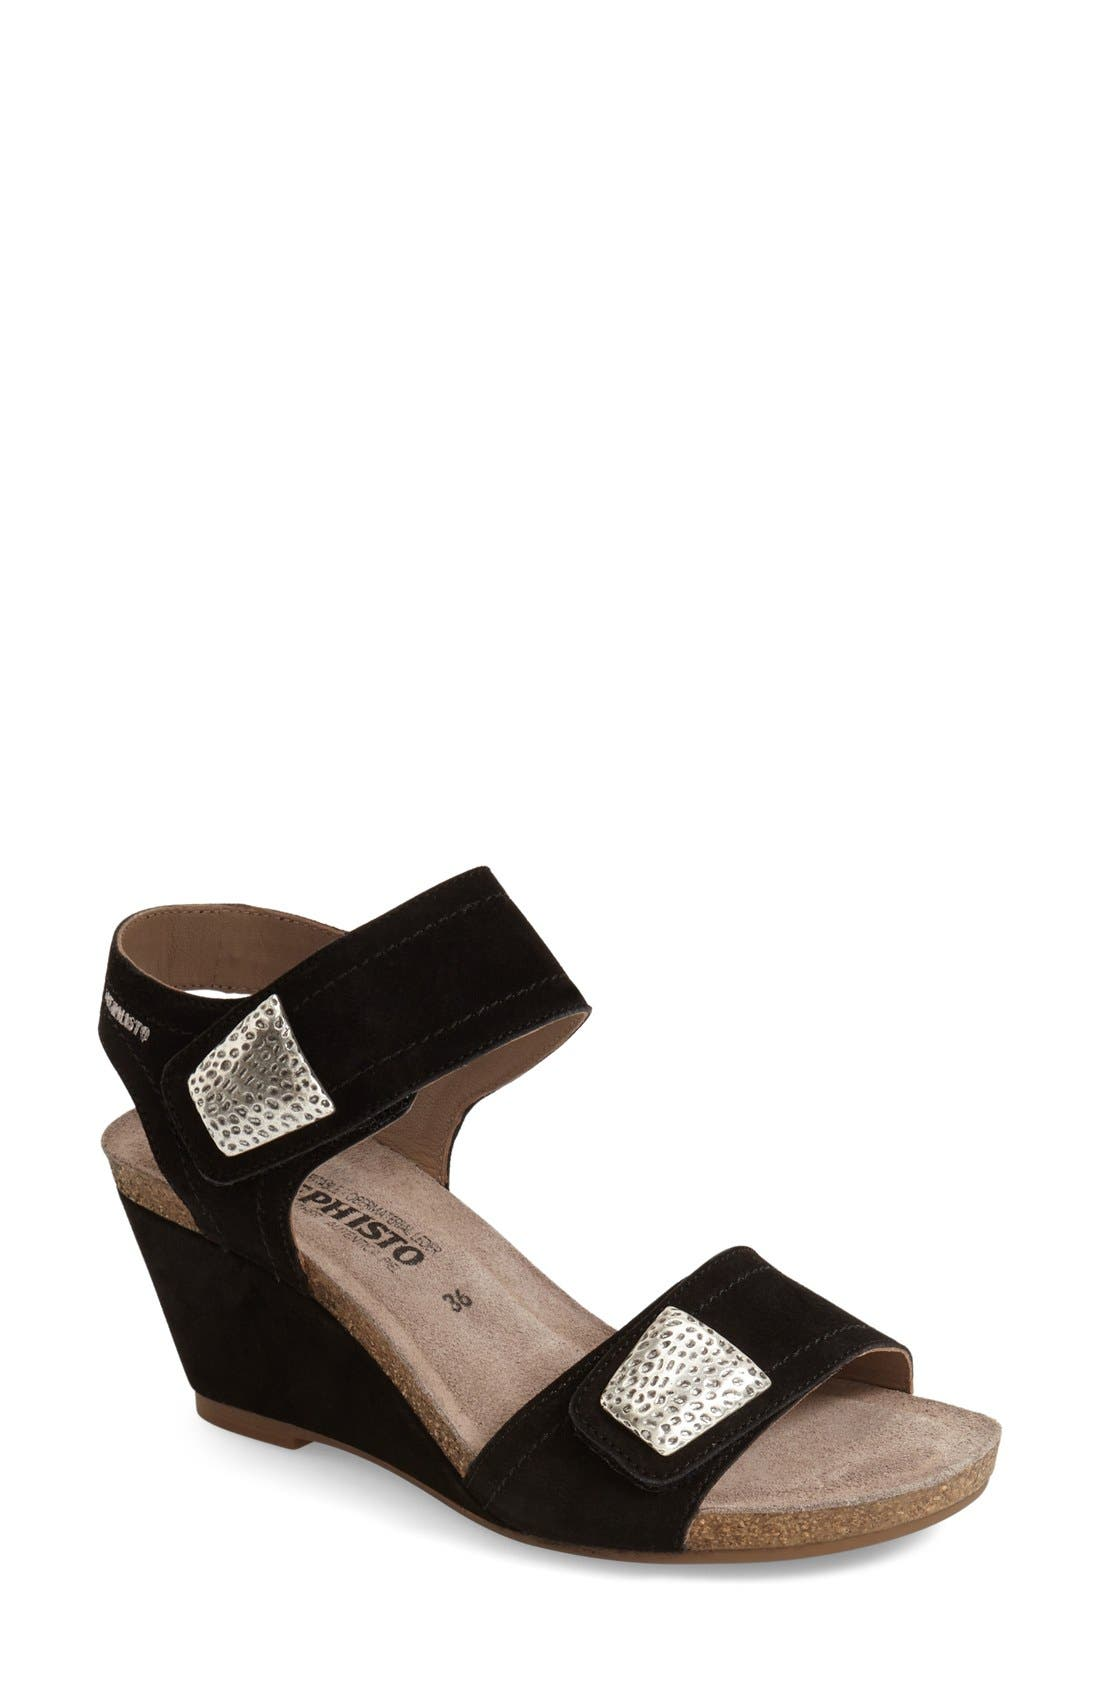 'Jackie' Wedge Sandal,                             Main thumbnail 1, color,                             Black Premium Suede